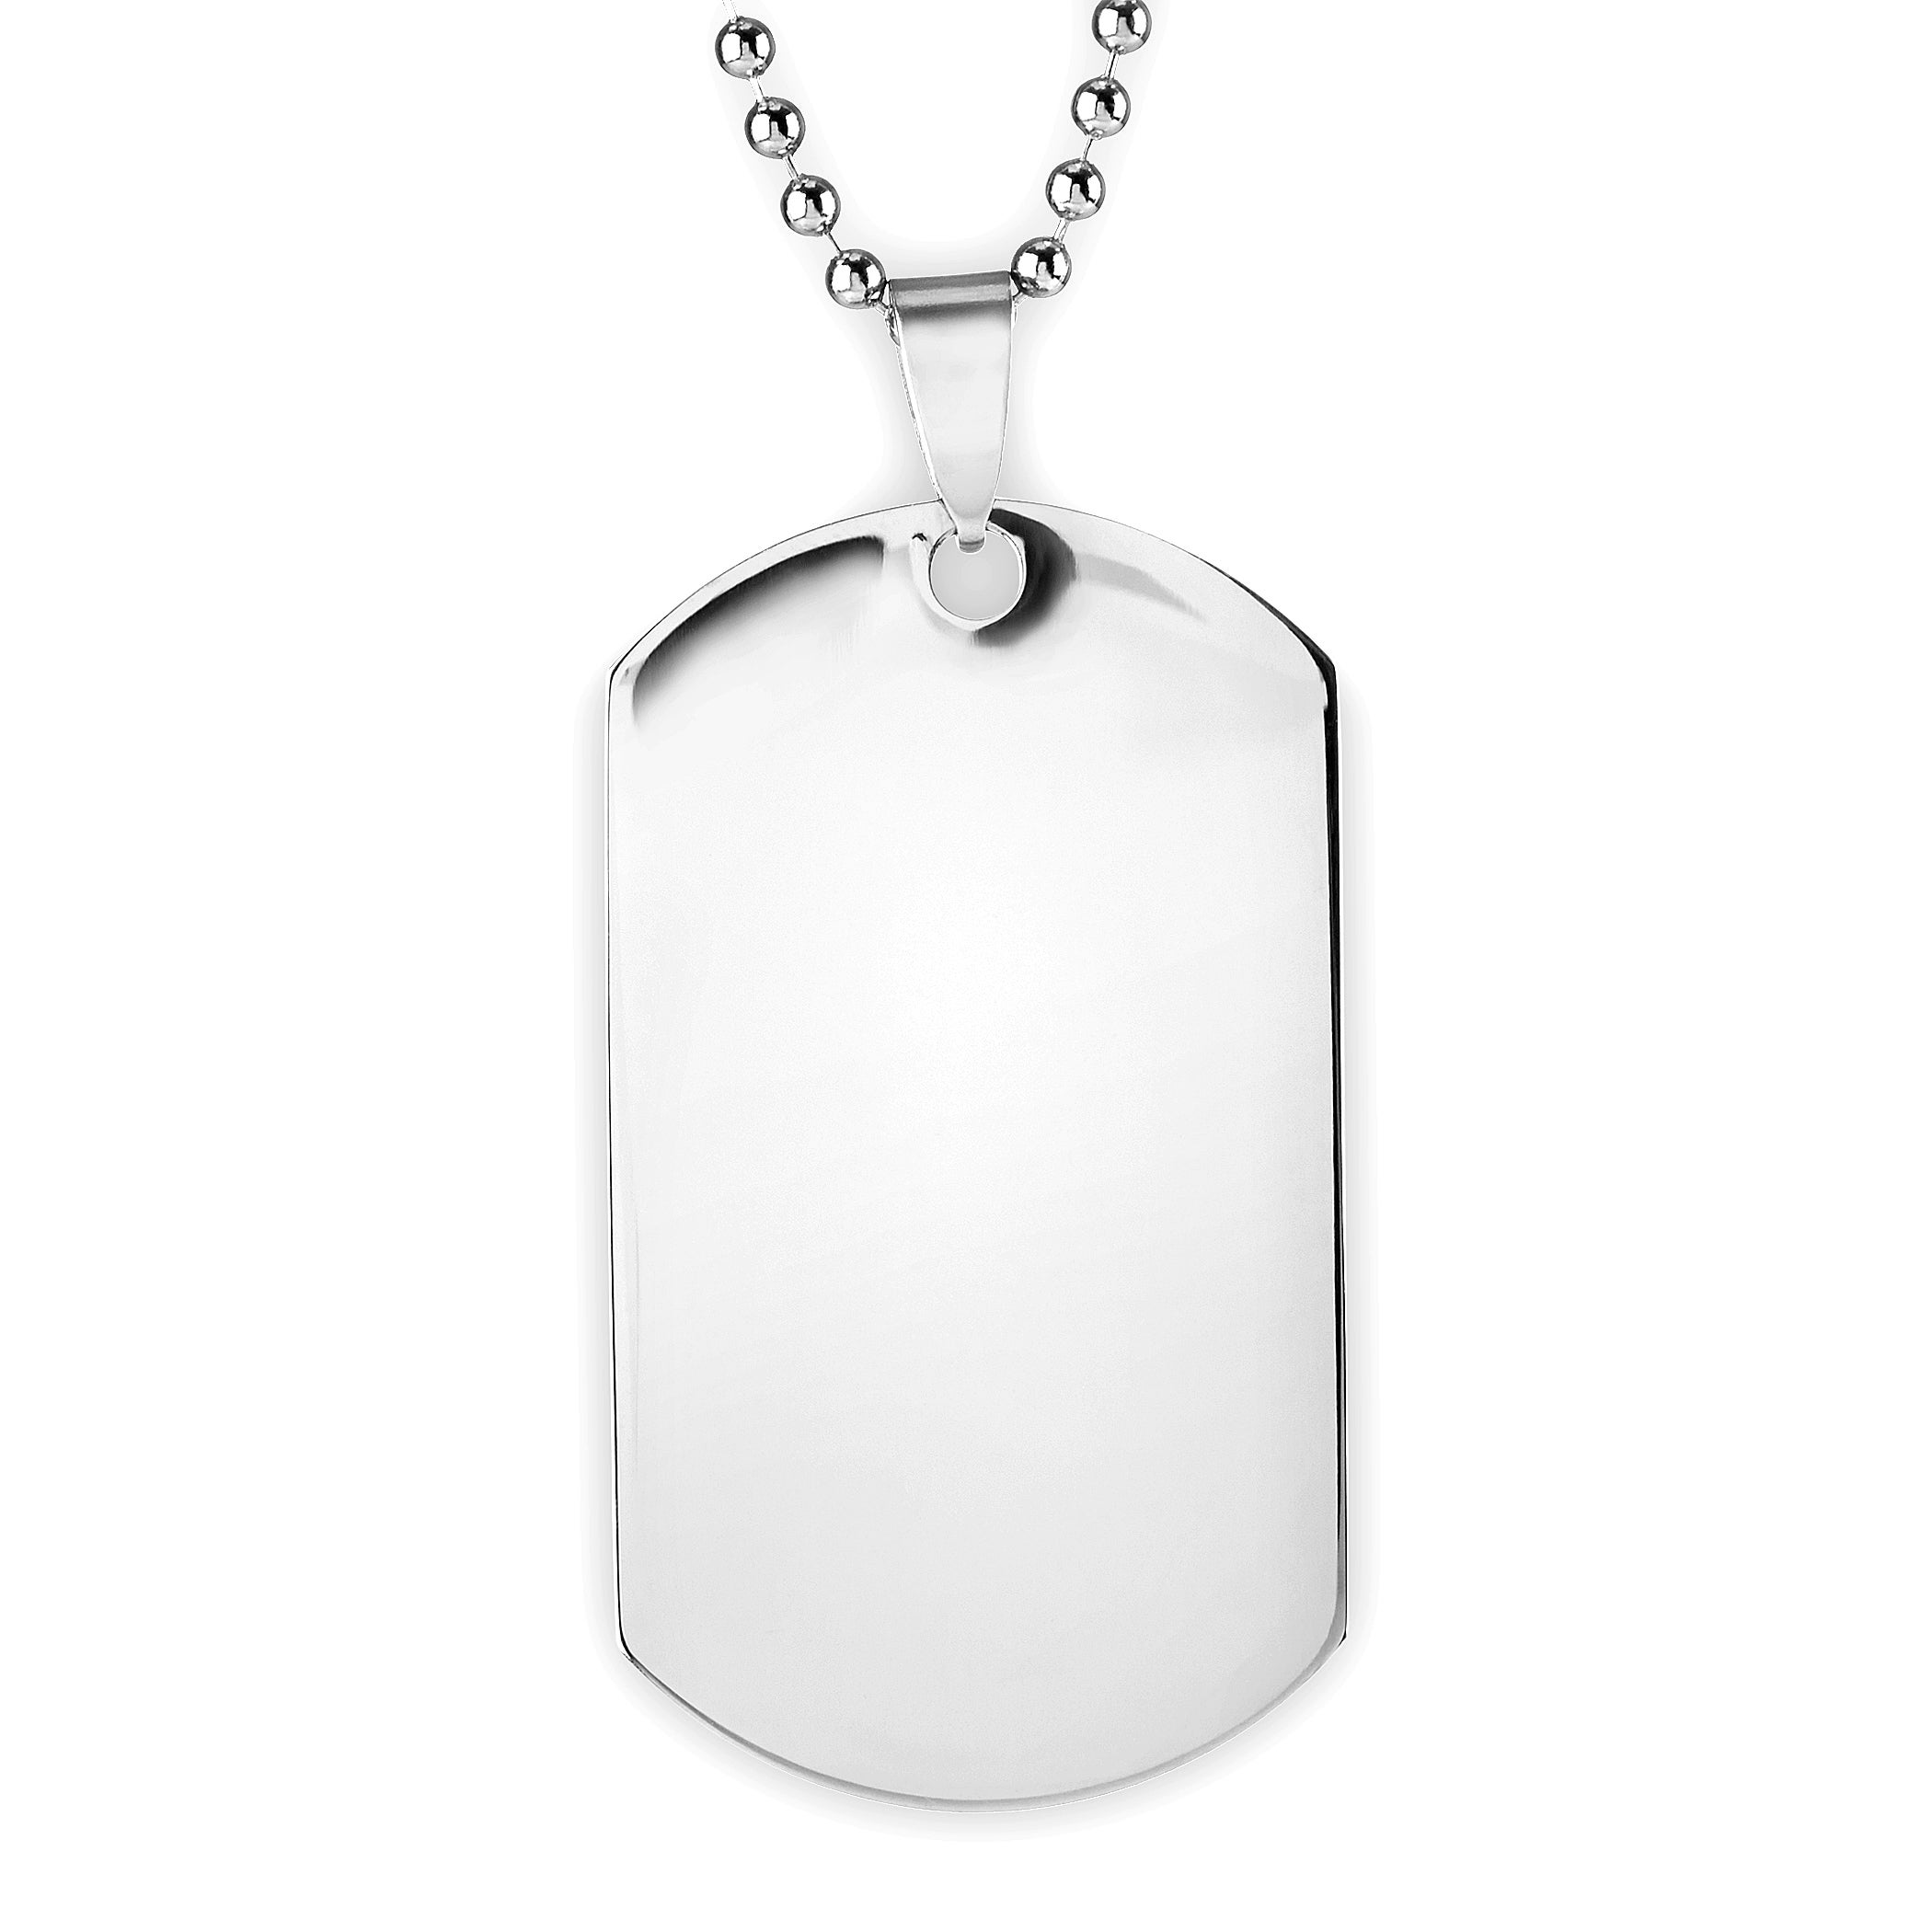 dp inch chain bullet style army necklace pendant amazon mens jewellery alloy uk cupimatch biker tag dog co military